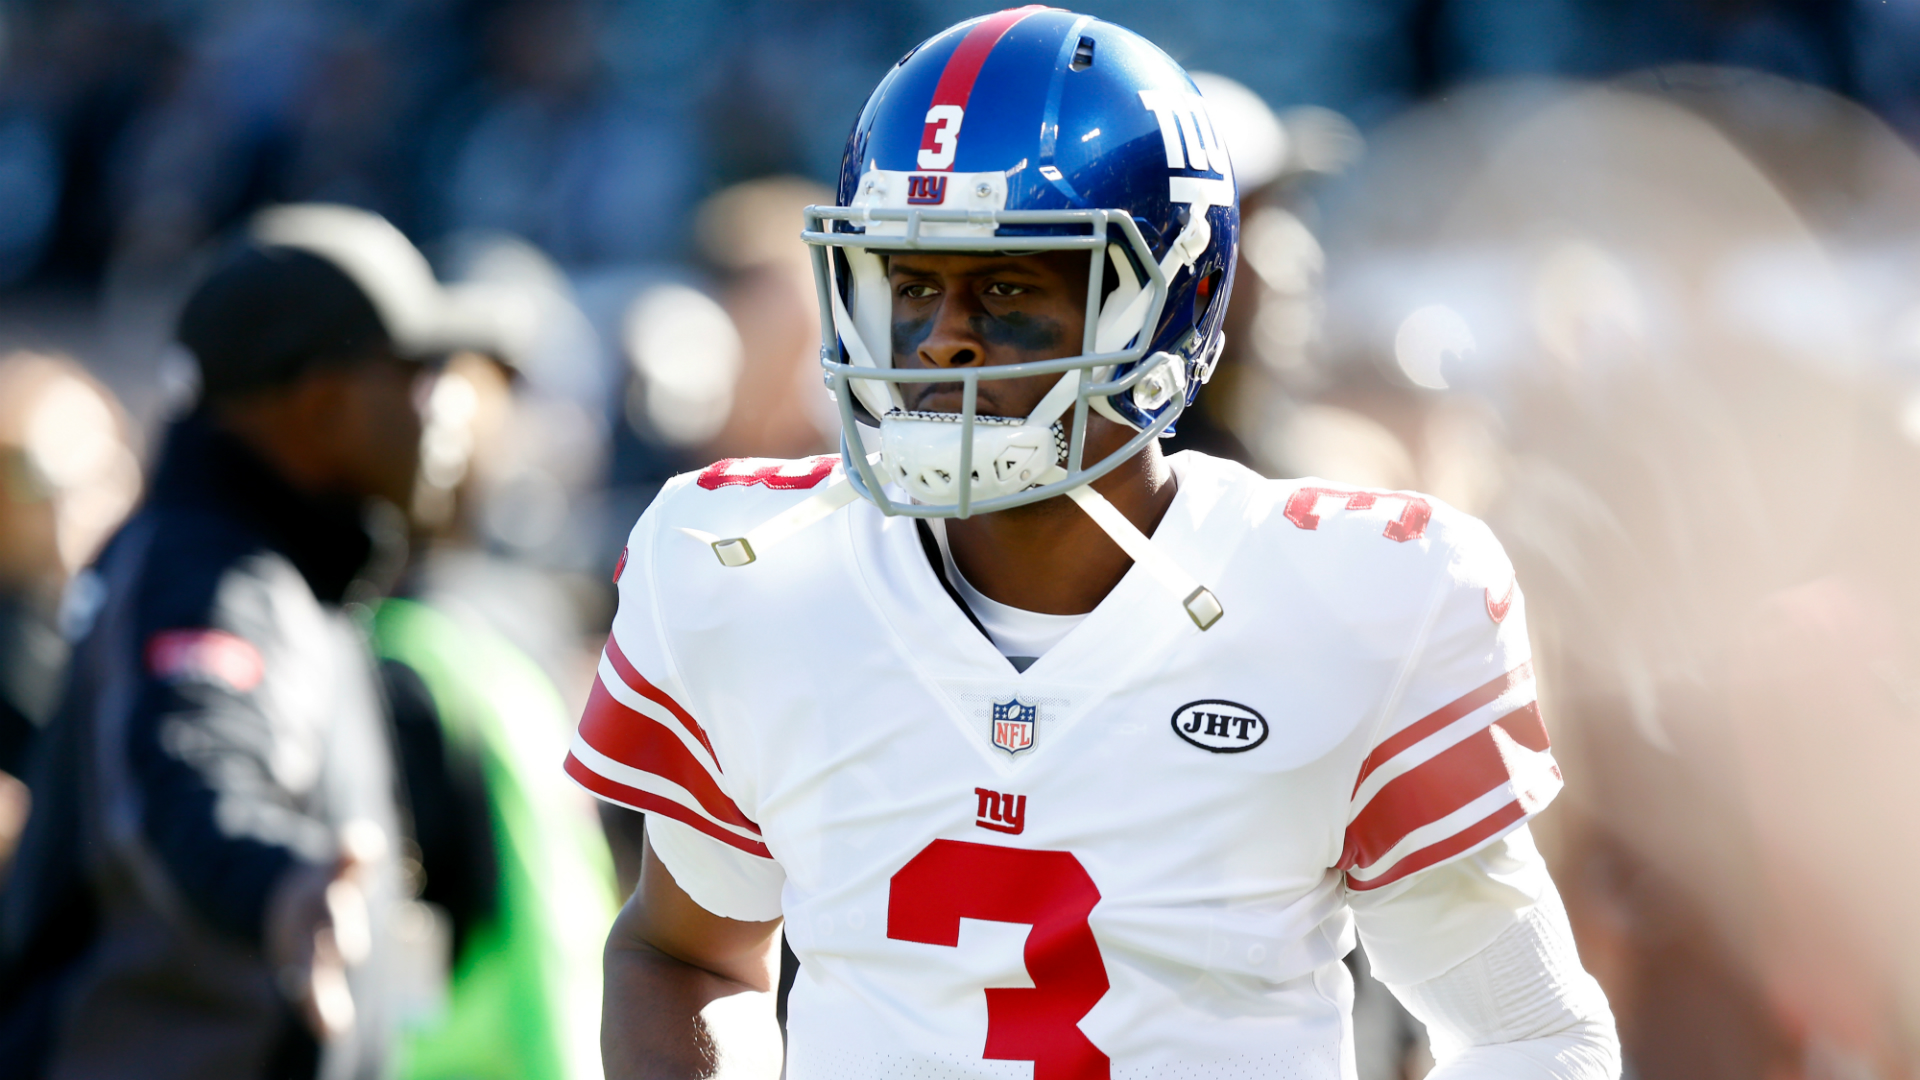 Giants QB Geno Smith won't walk to edge of theorized flat Earth because 'it's restricted'